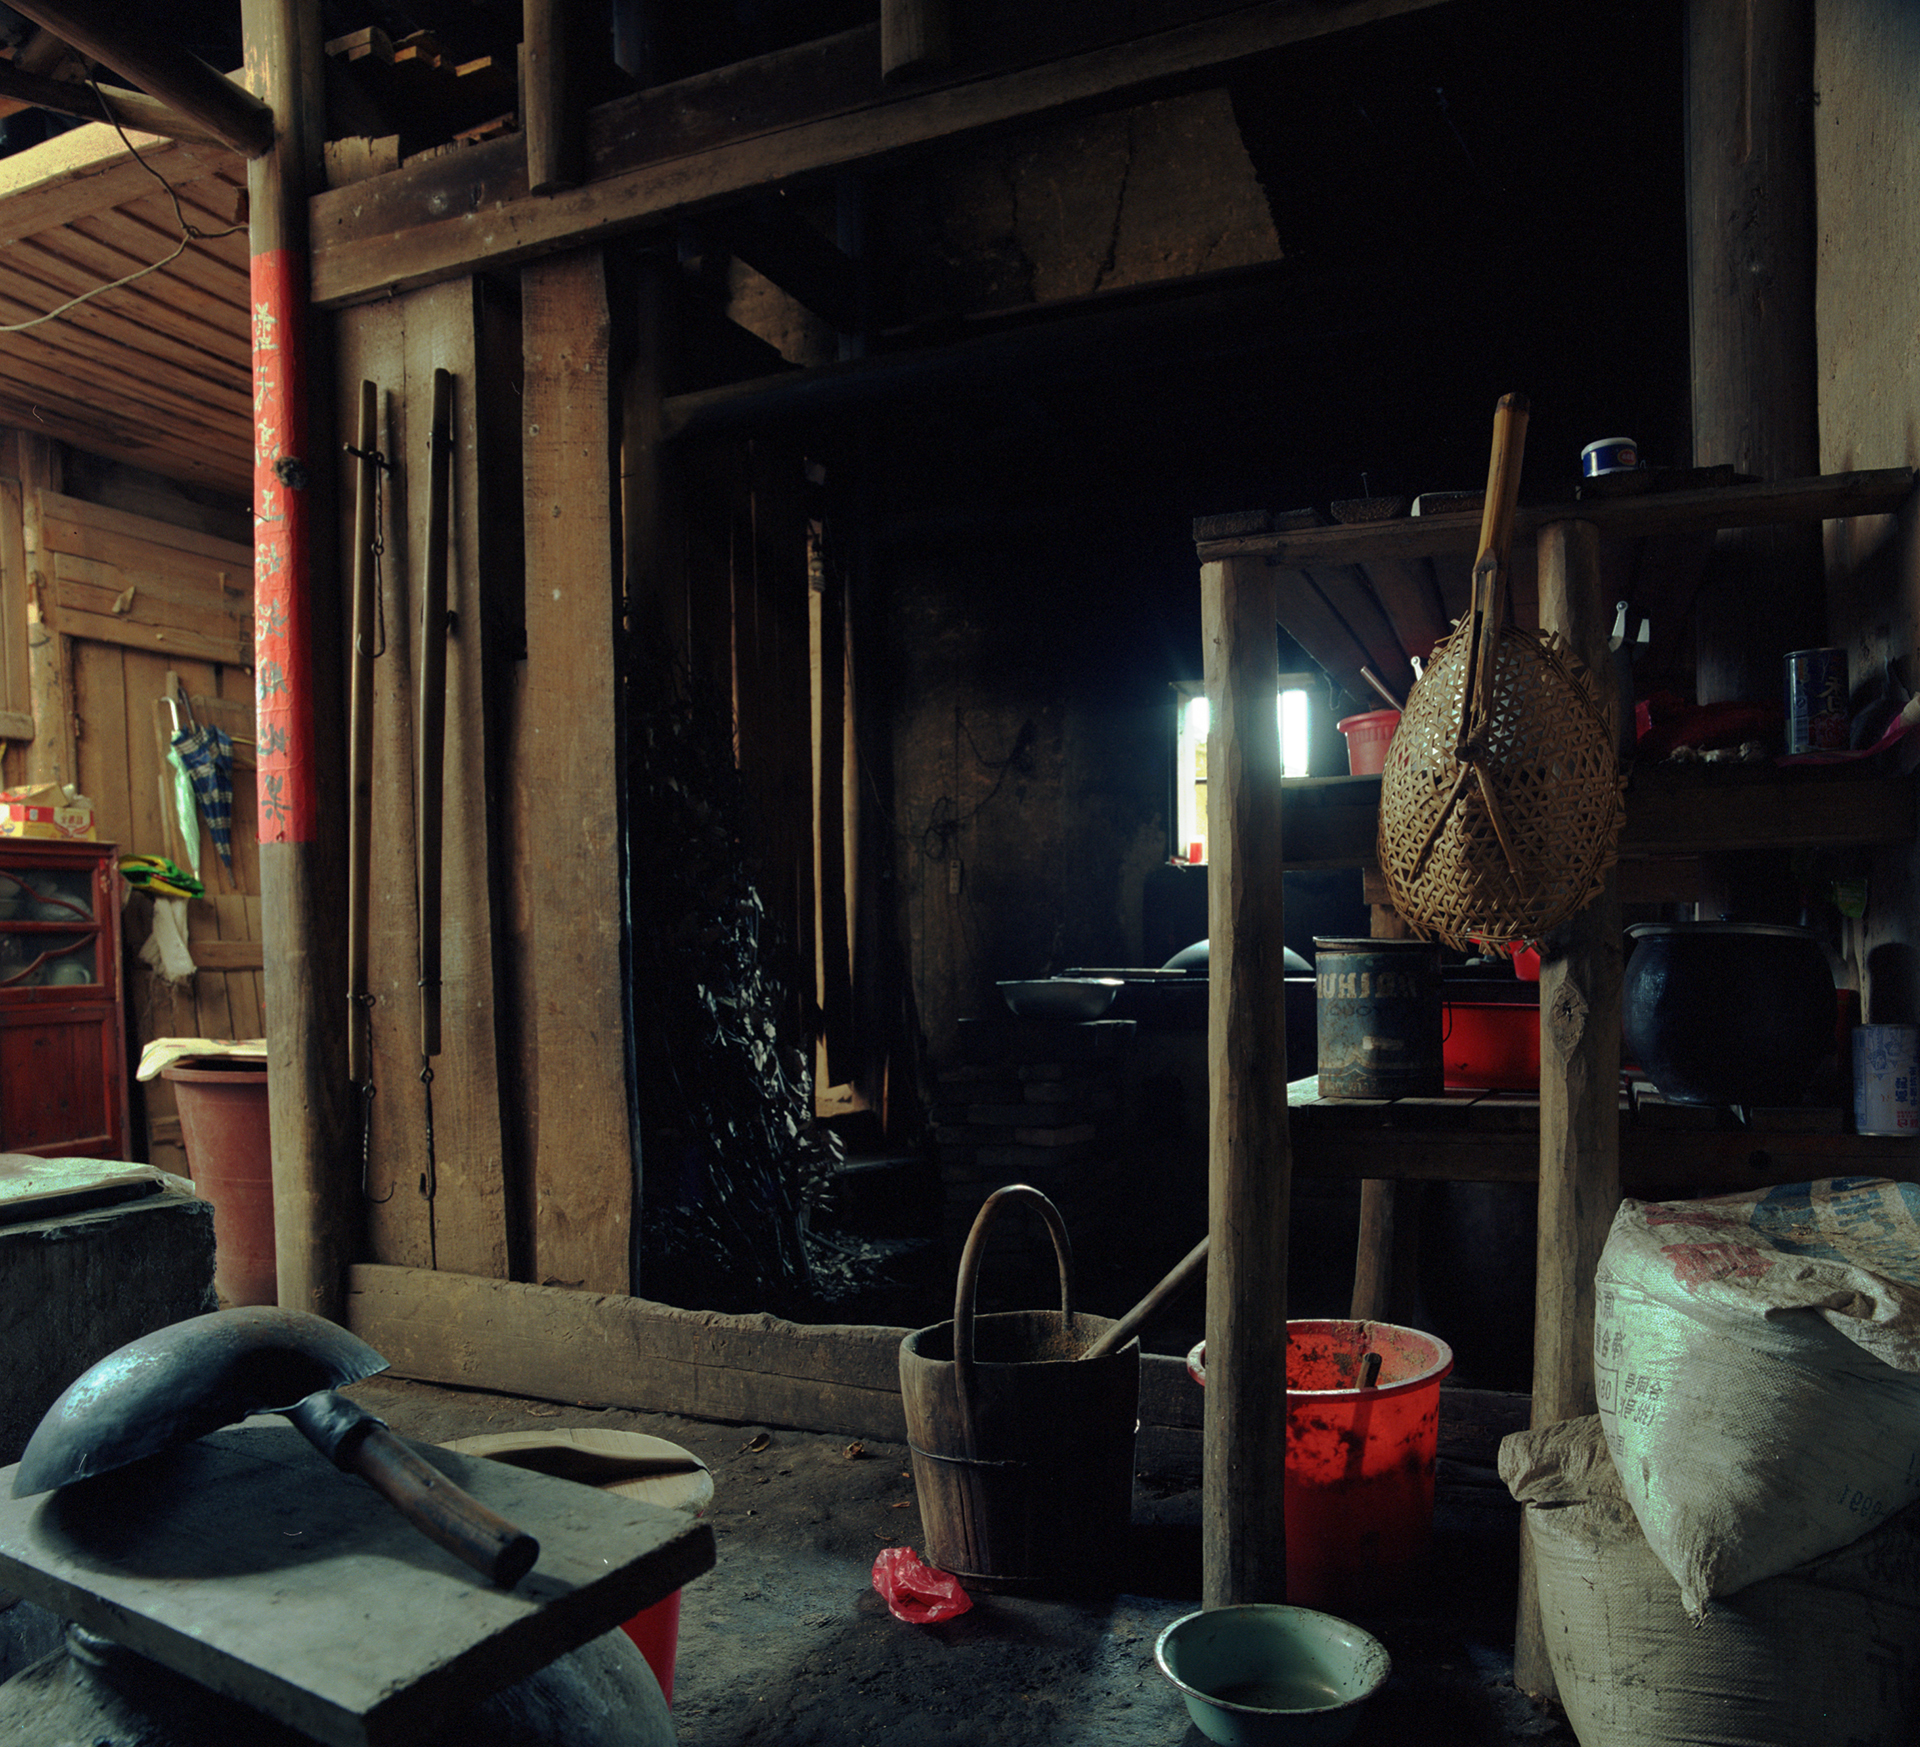 2009 Fujian - There is a small private kitchen in every crook, nook and corner.